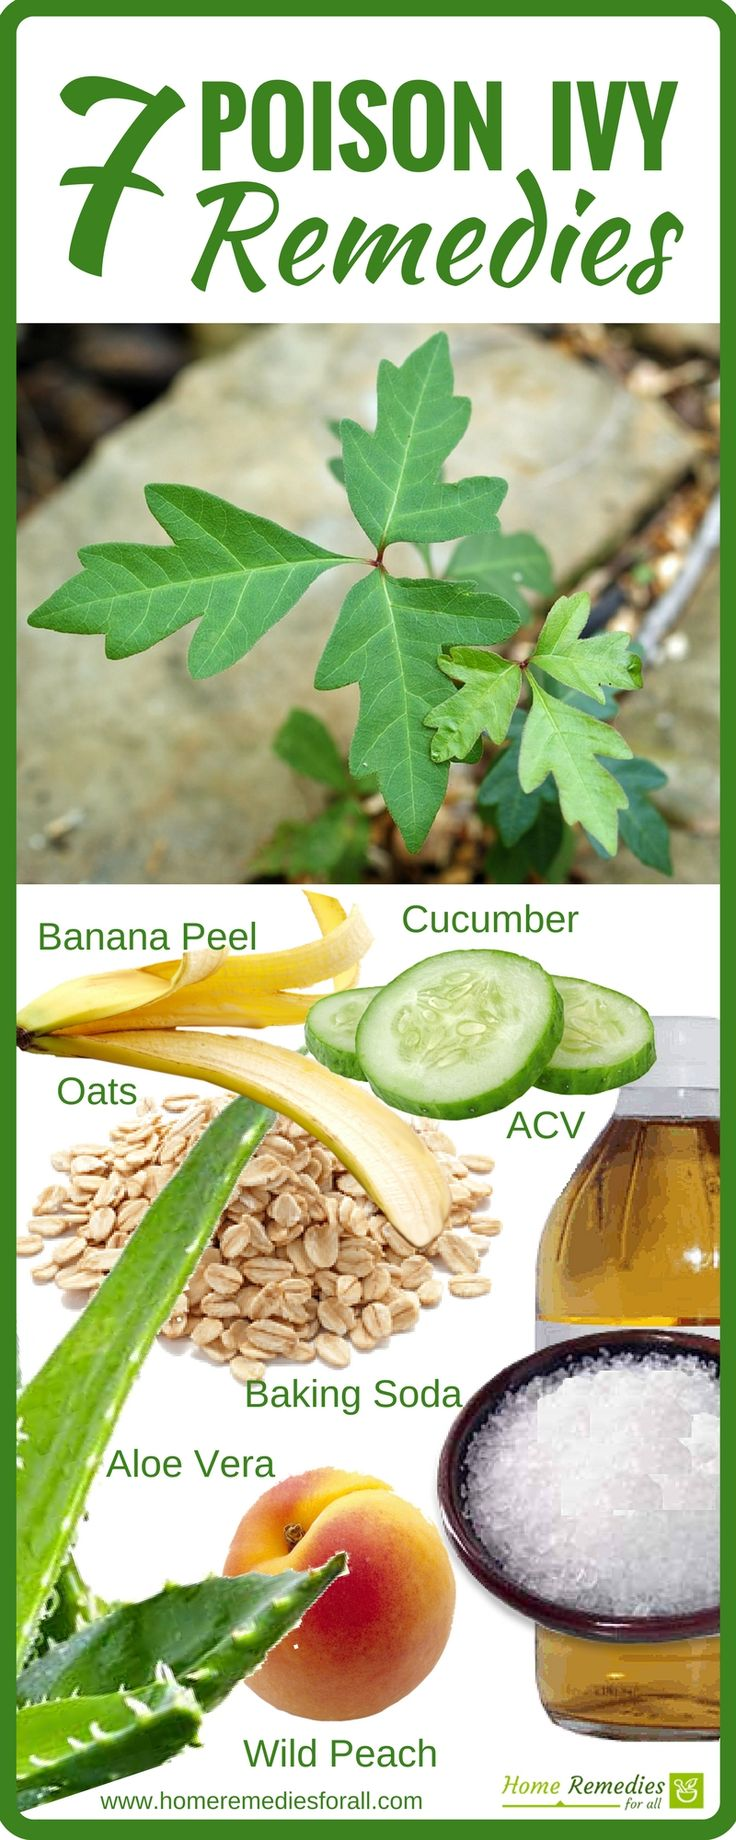 7 powerful and effective home remedies to heal poison ivy rashes.